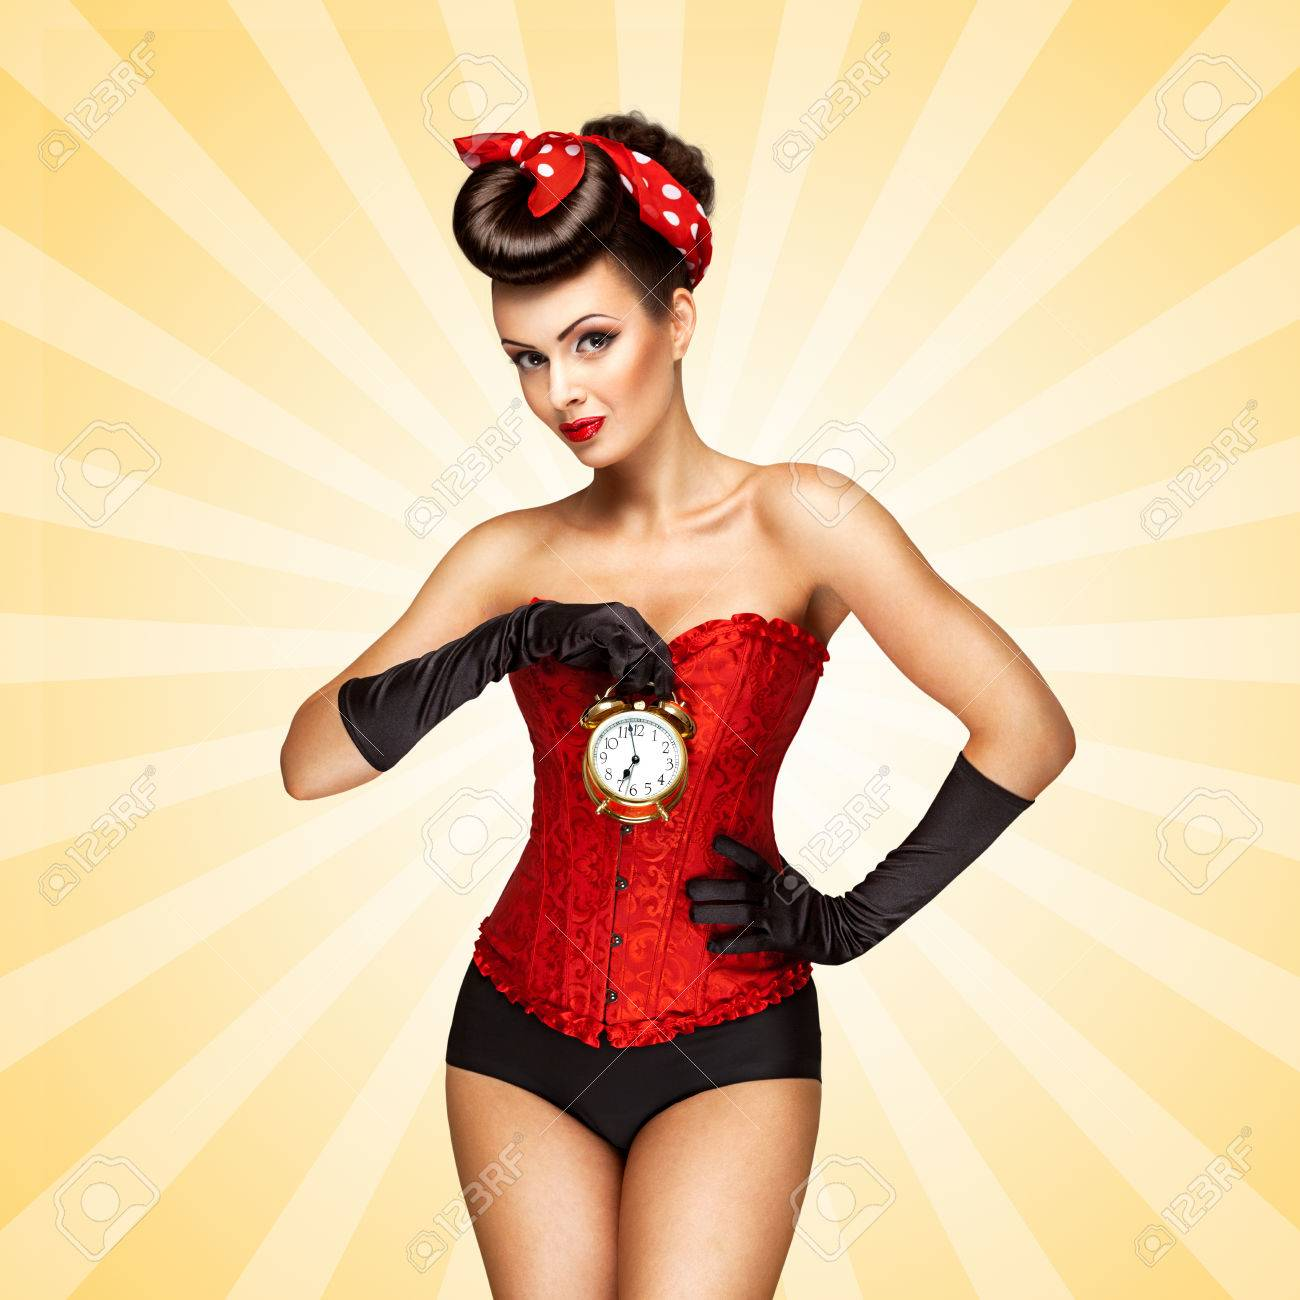 432c96cc8 Glamorous pinup girl in a red vintage corset holding a retro alarm clock in her  hand